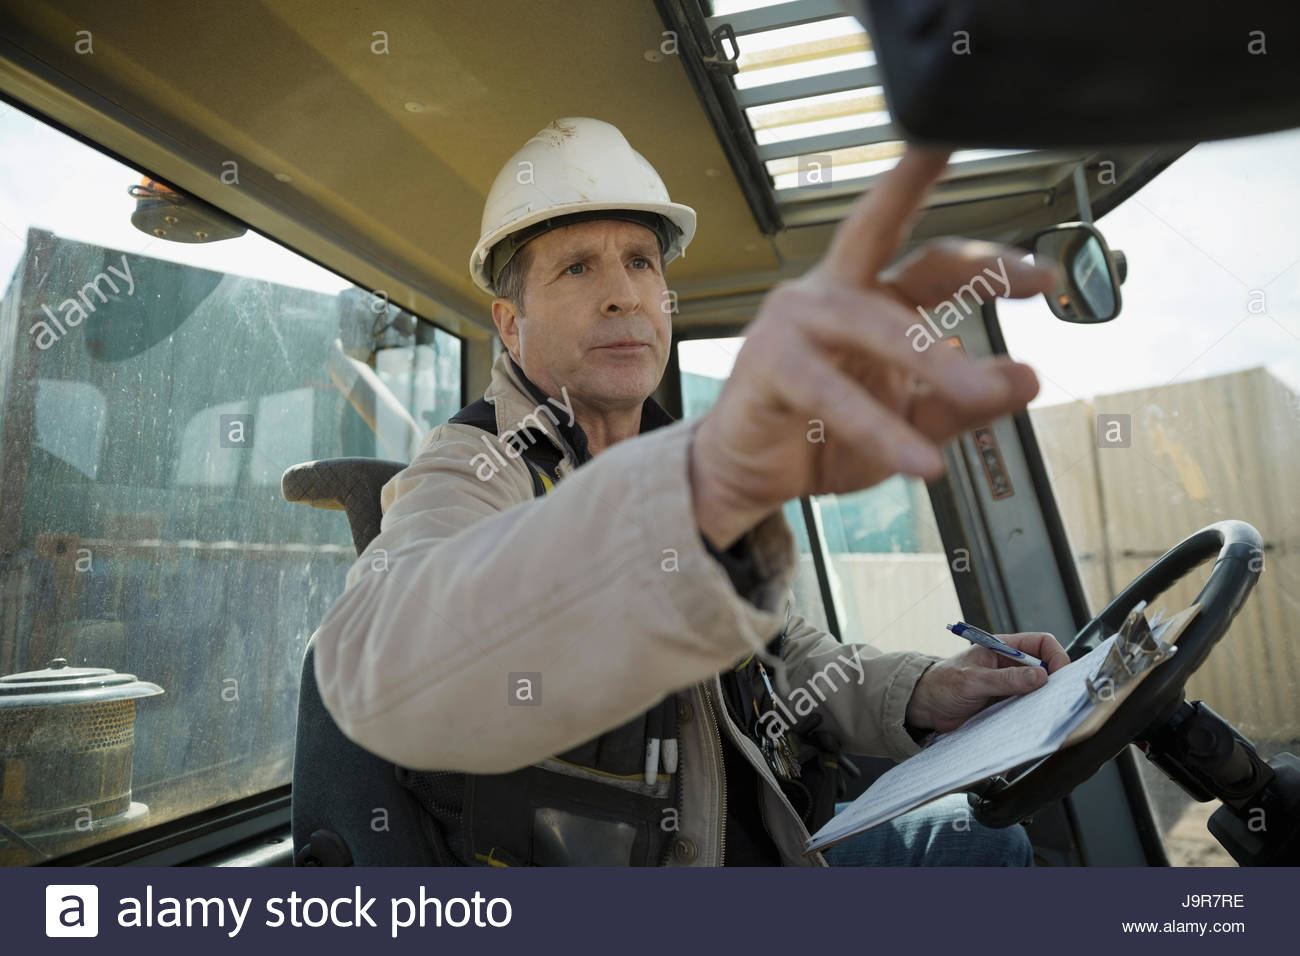 Male forklift driver with clipboard inside forklift in container yard Stock Photo